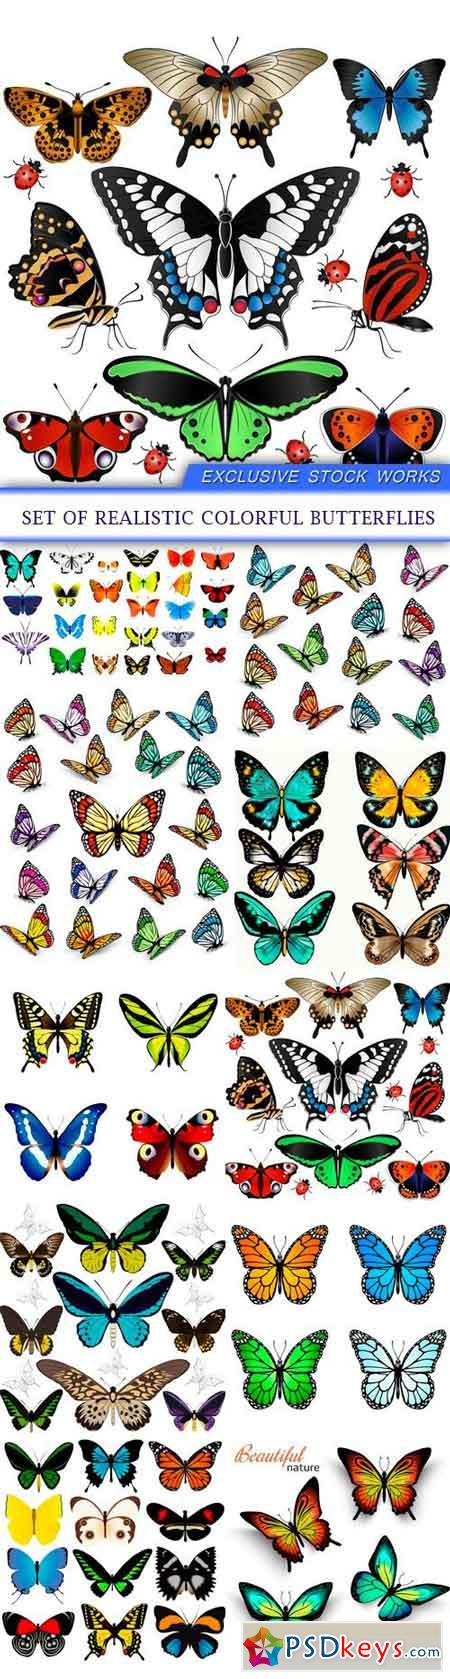 Set of realistic colorful butterflies 10X EPS